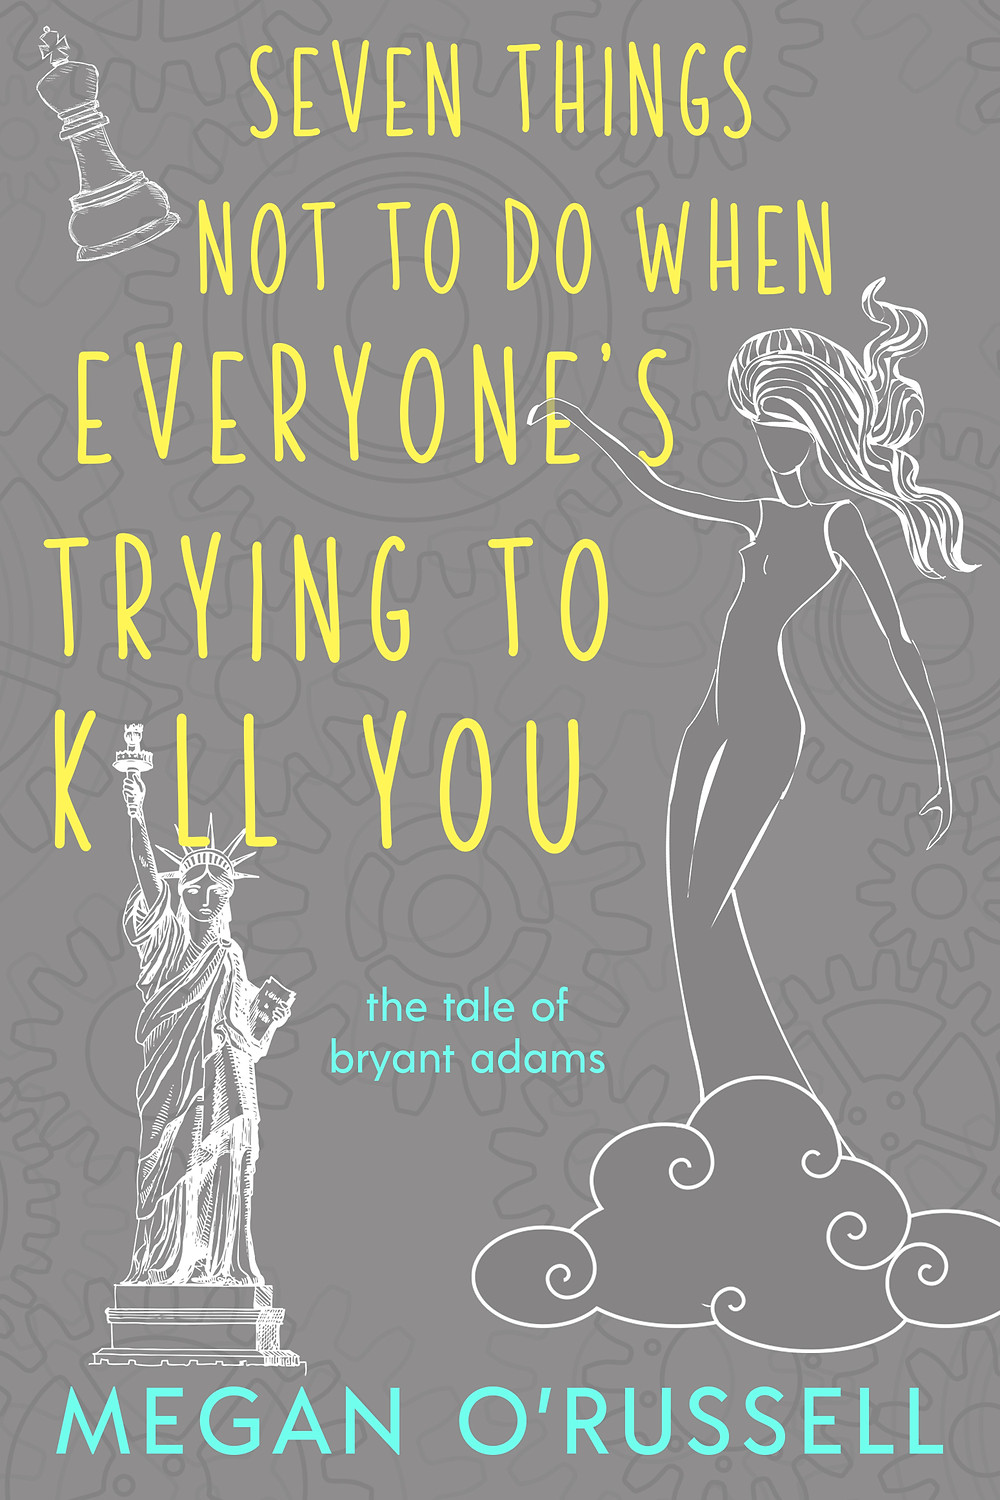 Seven Things Not to Do When Everyone's Trying to Kill You